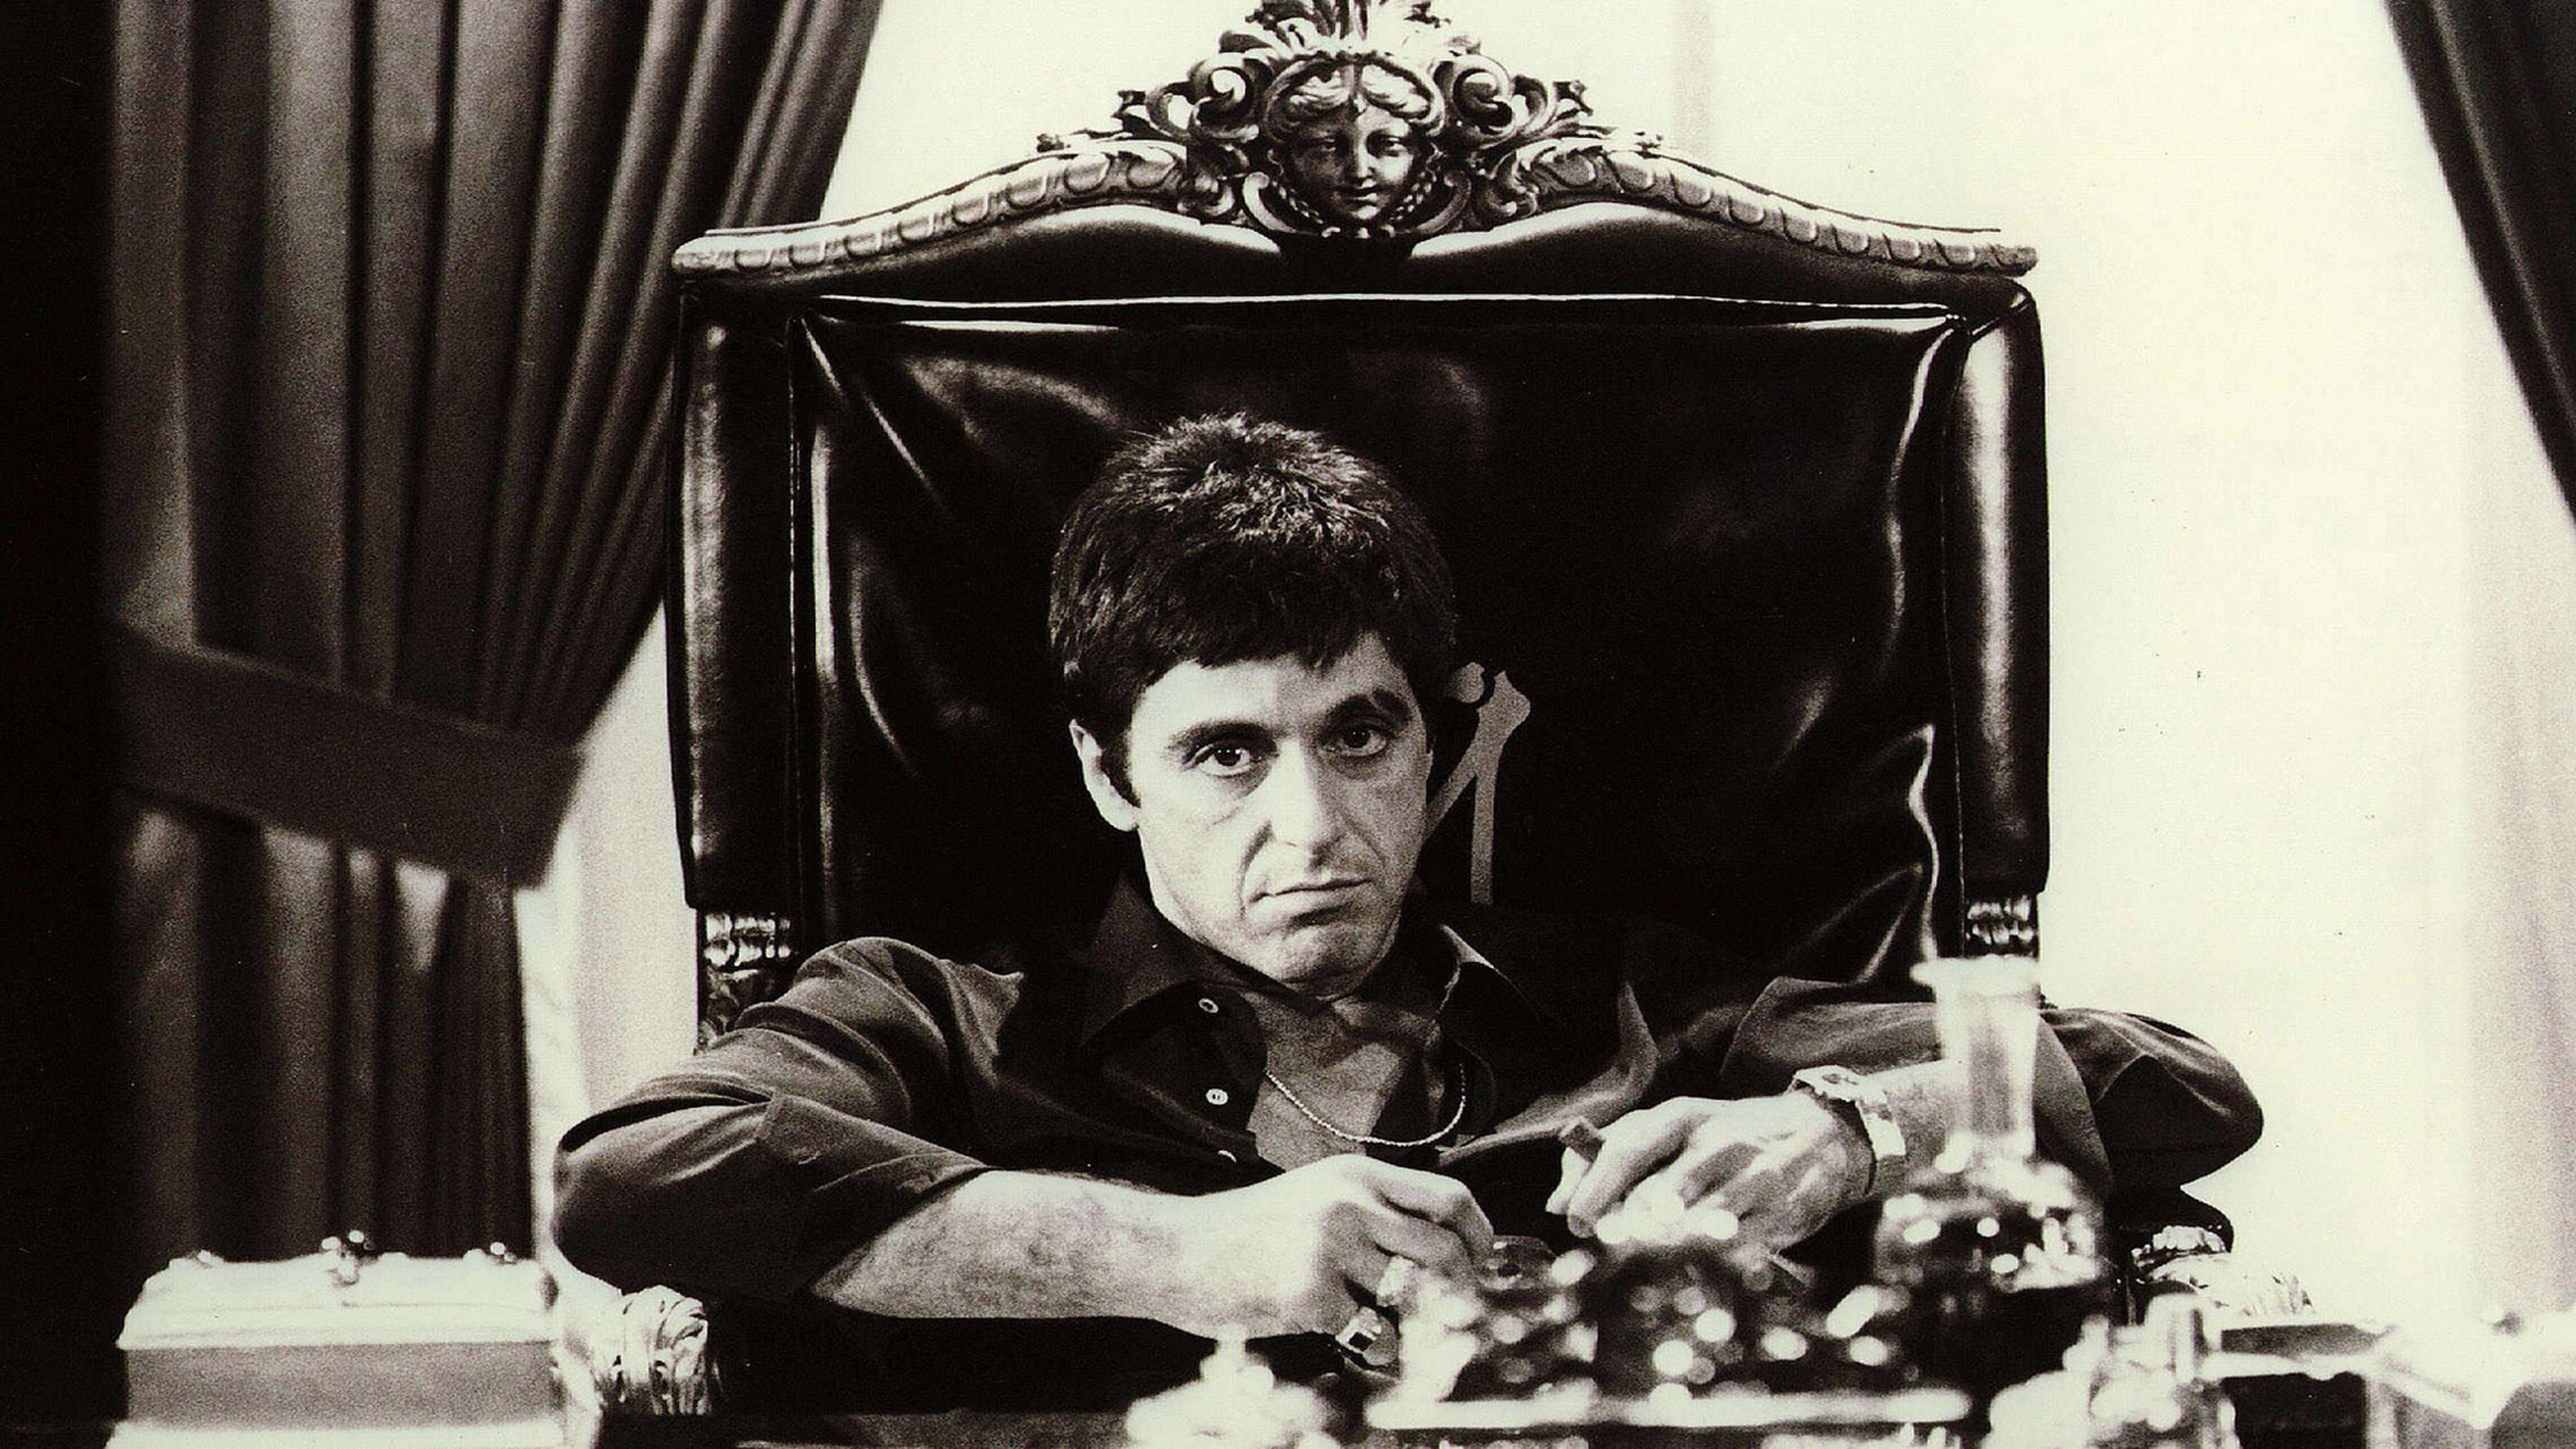 Scarface Ultra Hd Wallpaper 4k Resim Fotograf Sinema